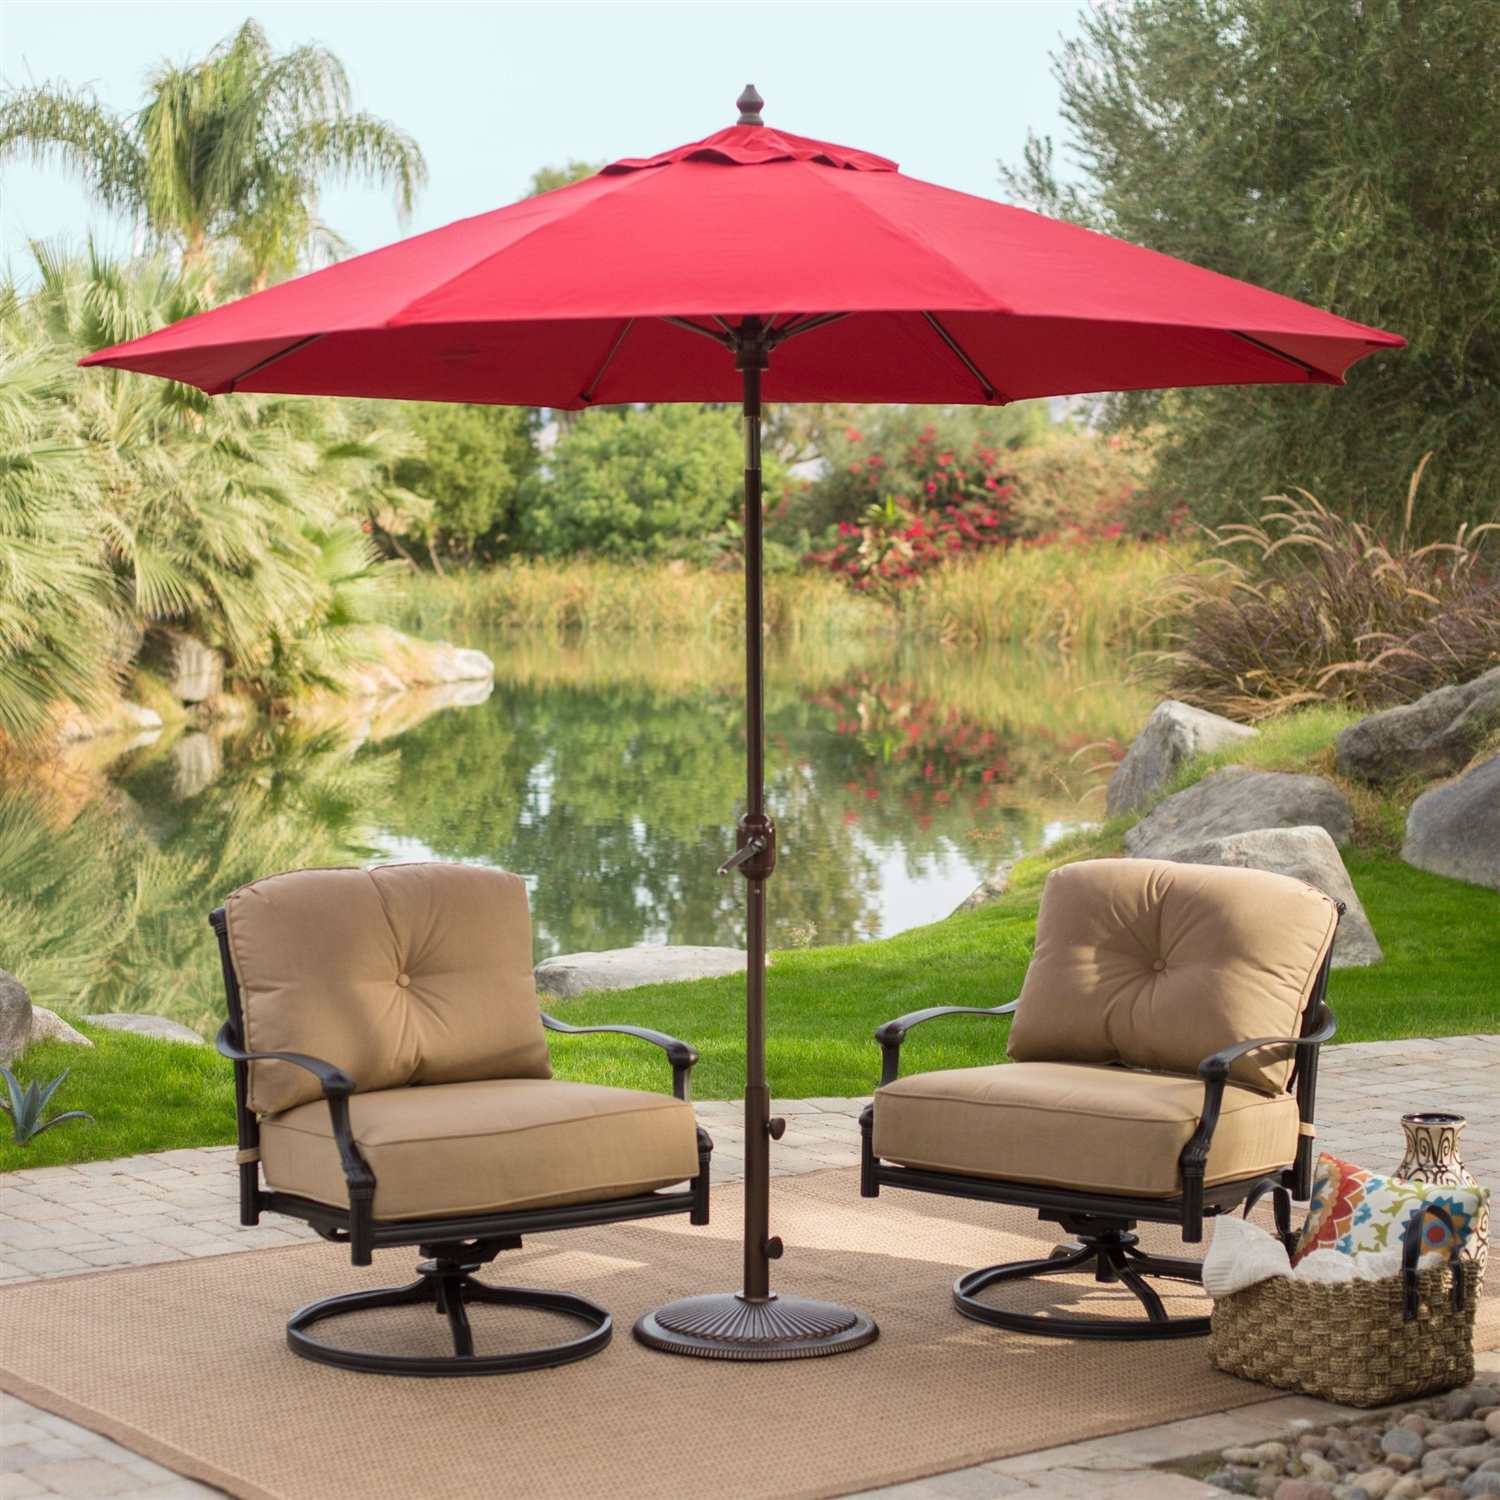 Sunbrella 9-Ft Patio Umbrella with Deluxe Tilt in Antique Bronze with Red Shade